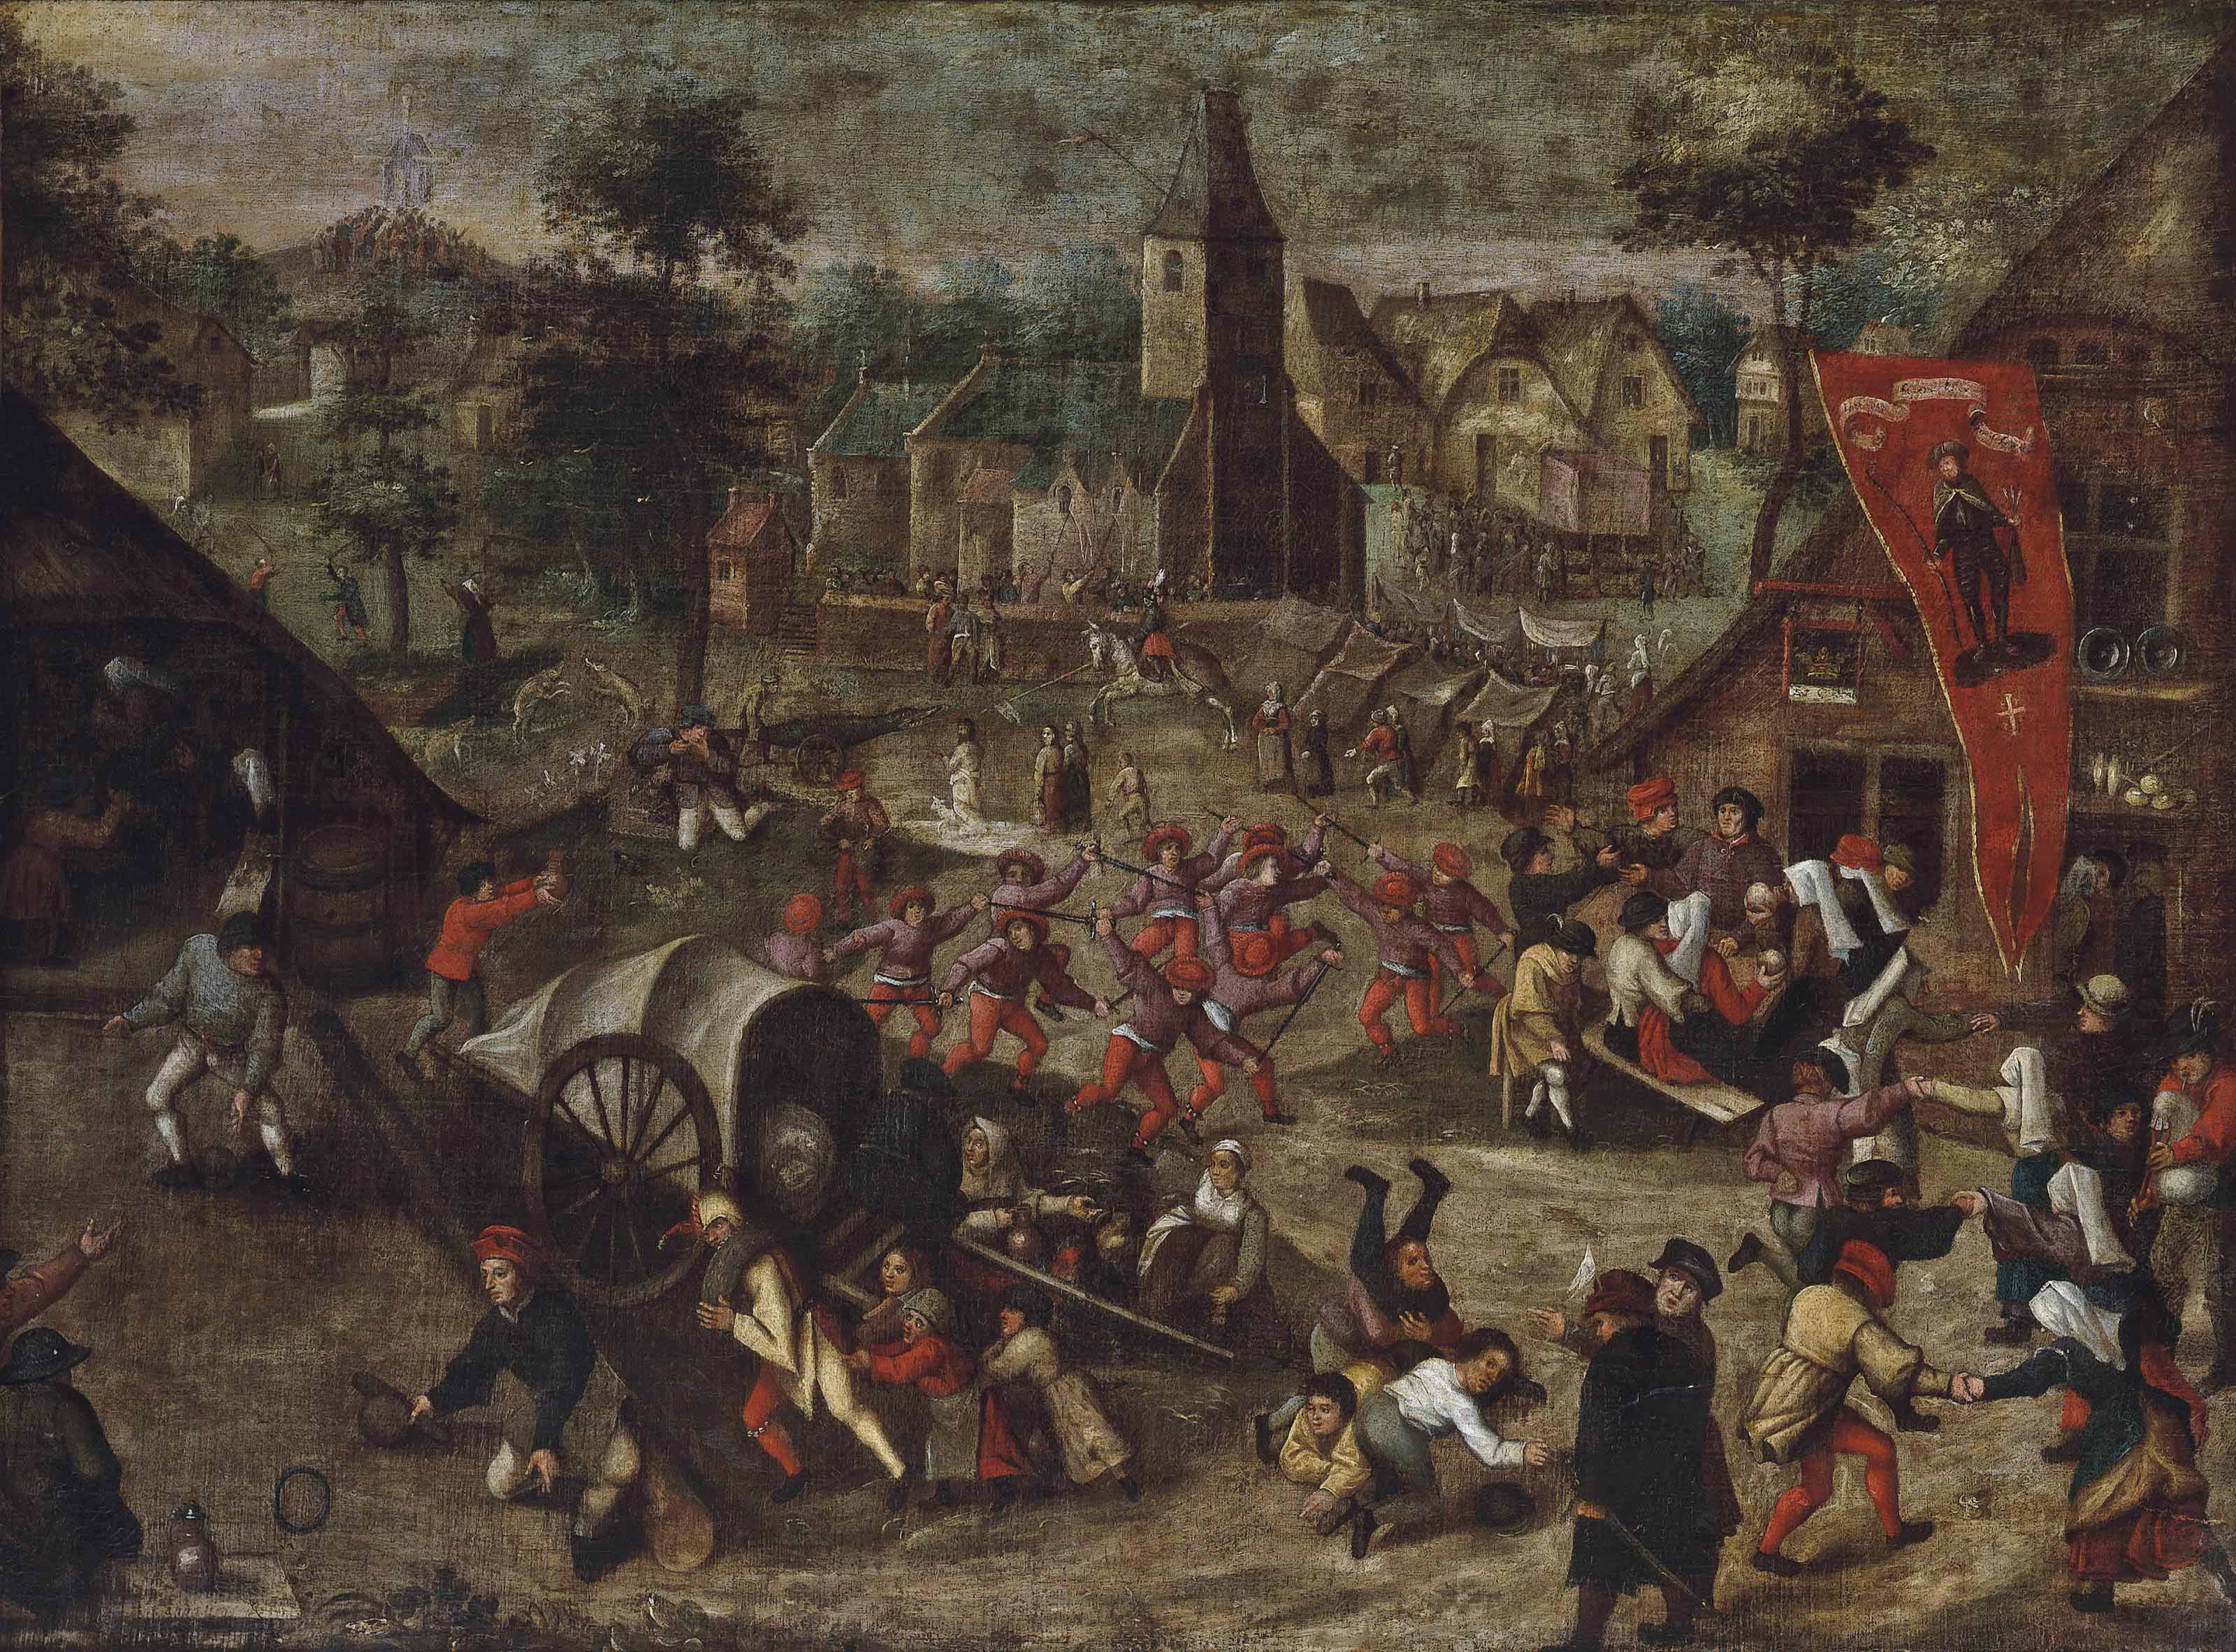 A village with figures celebrating the kermesse of Saint George